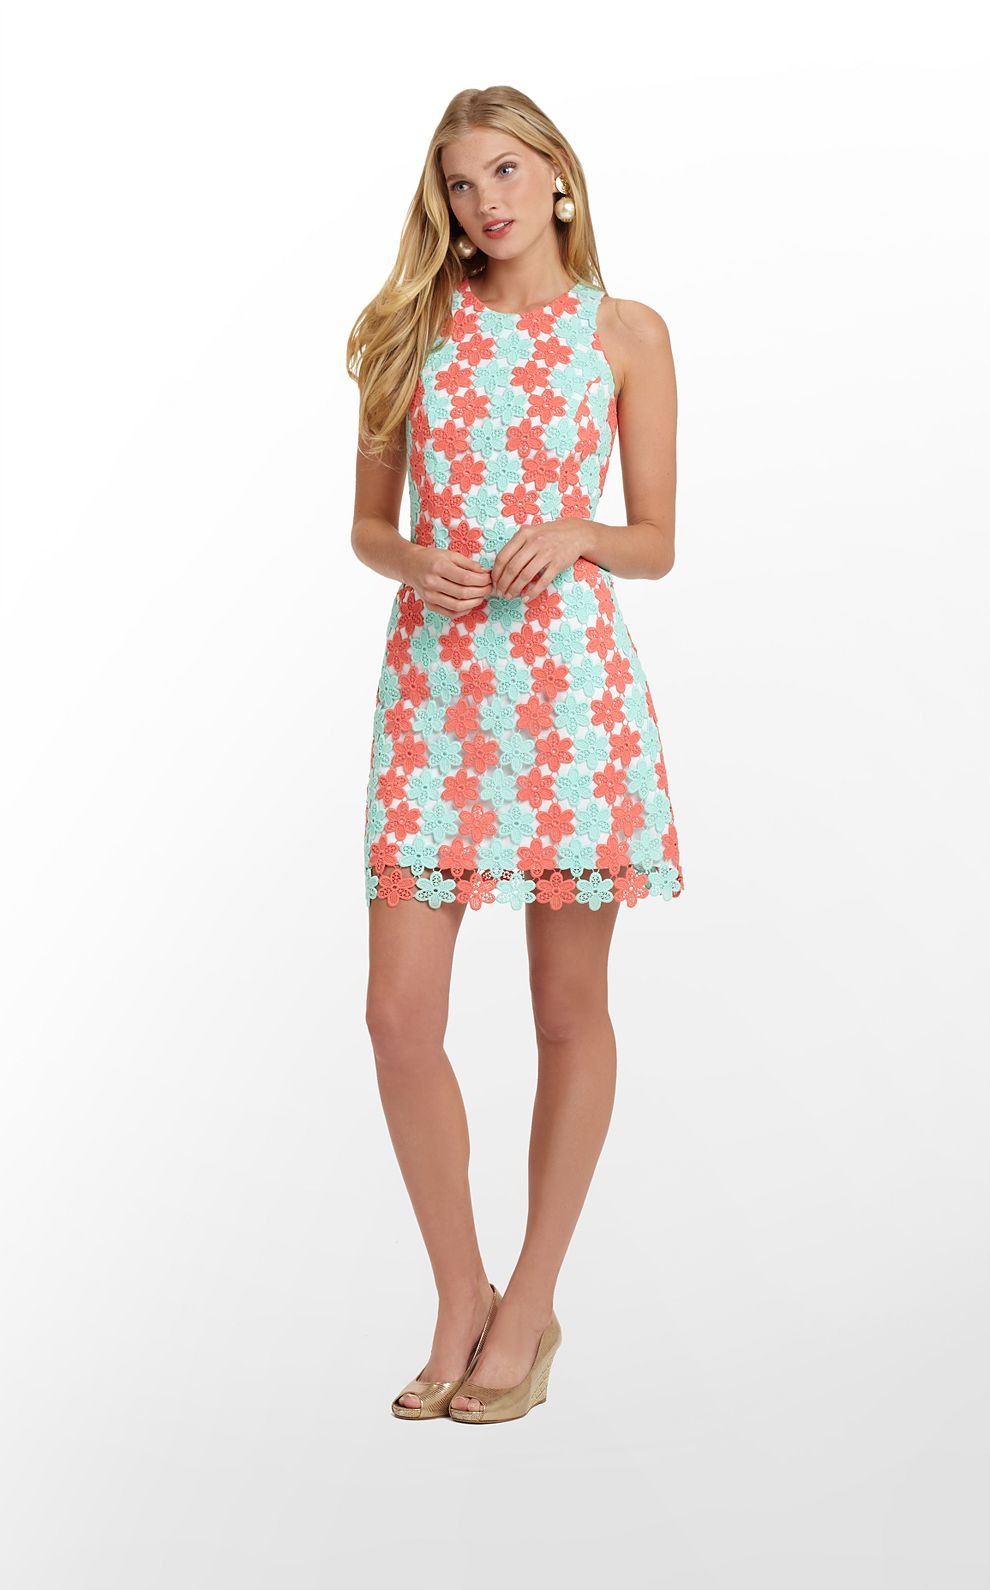 Lilly Pulitzer Dresses Cheap Re Lilly